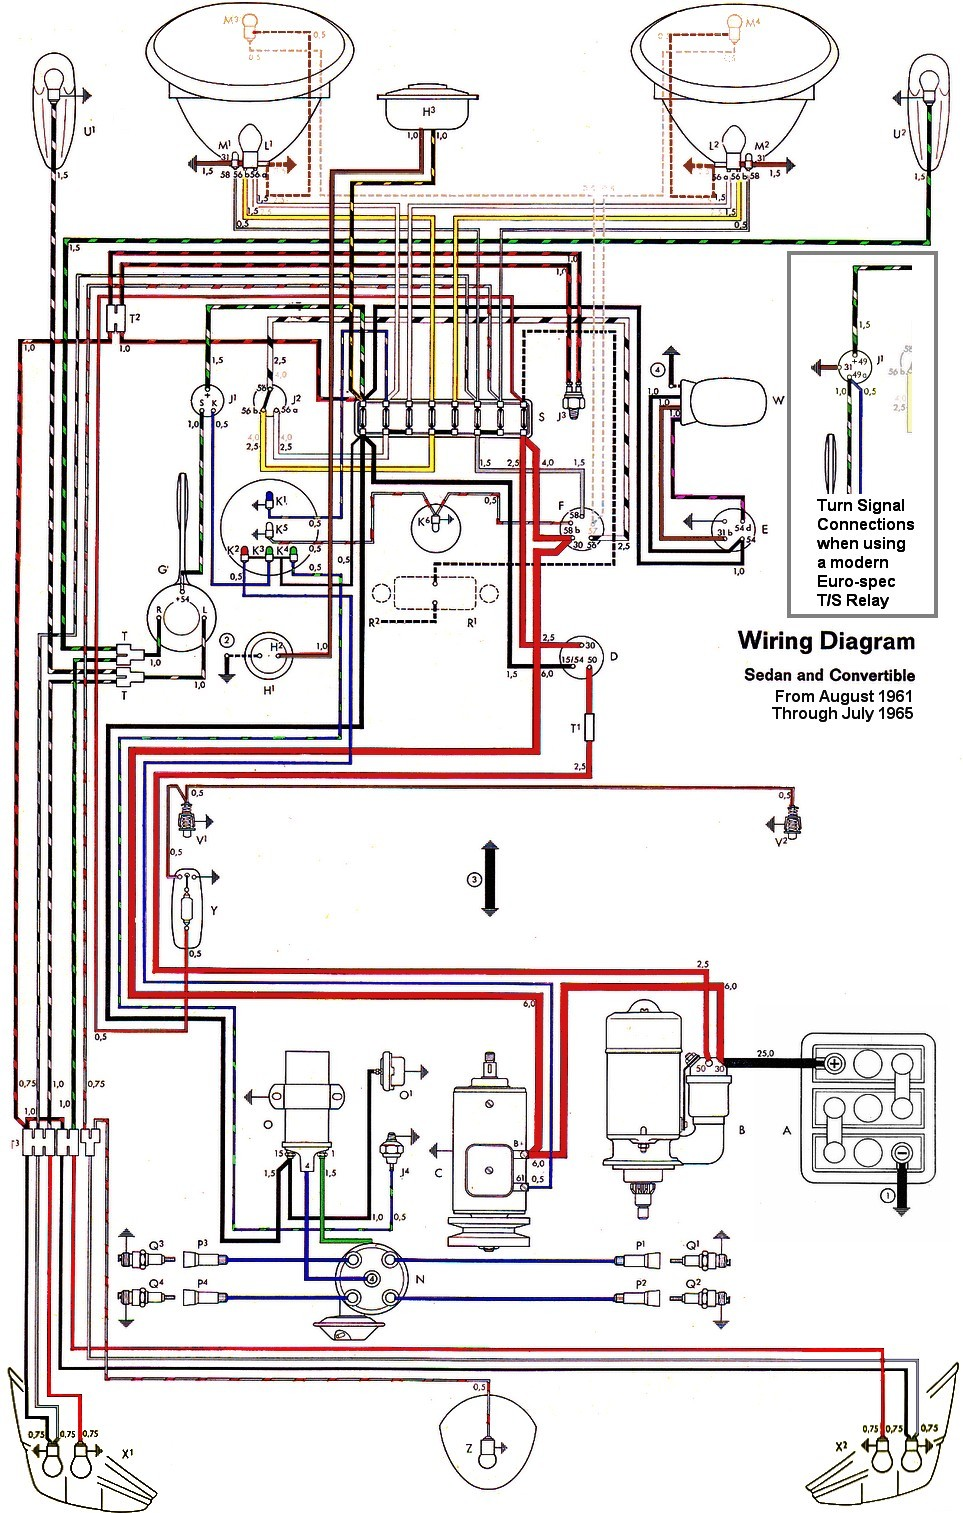 medium resolution of 62 vw bug wiring harness diagram wiring diagram third level 1969 vw beetle wiring diagram 1962 beetle wiring diagram